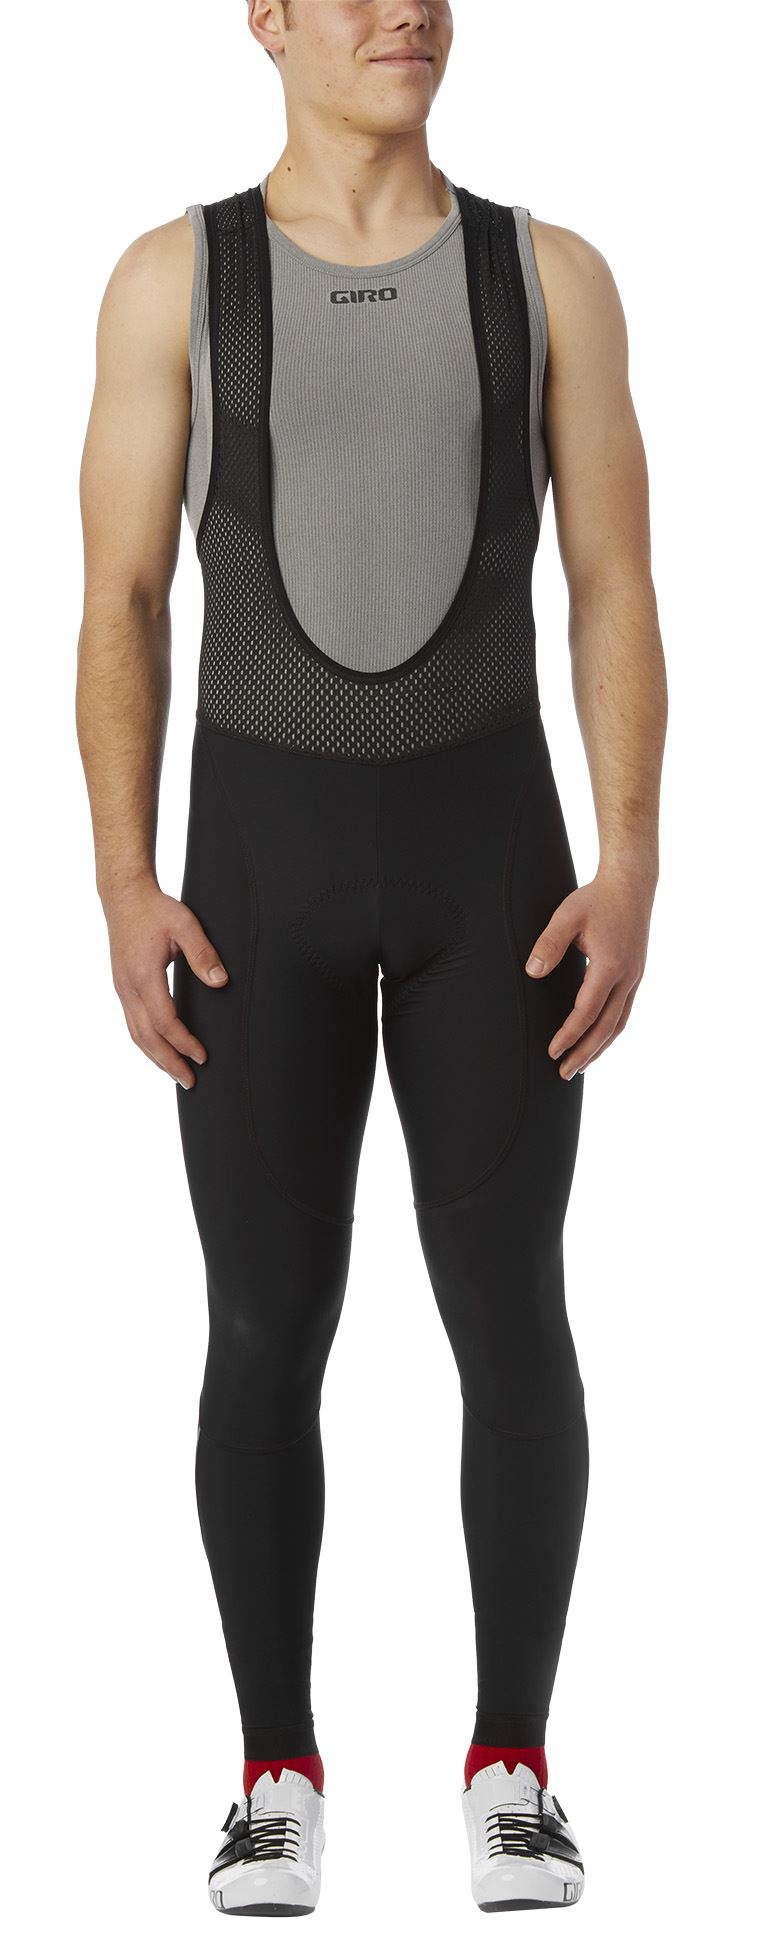 Spodenki męskie GIRO CHRONO EXPERT THERMAL BIB TIGHT black roz. M (NEW)